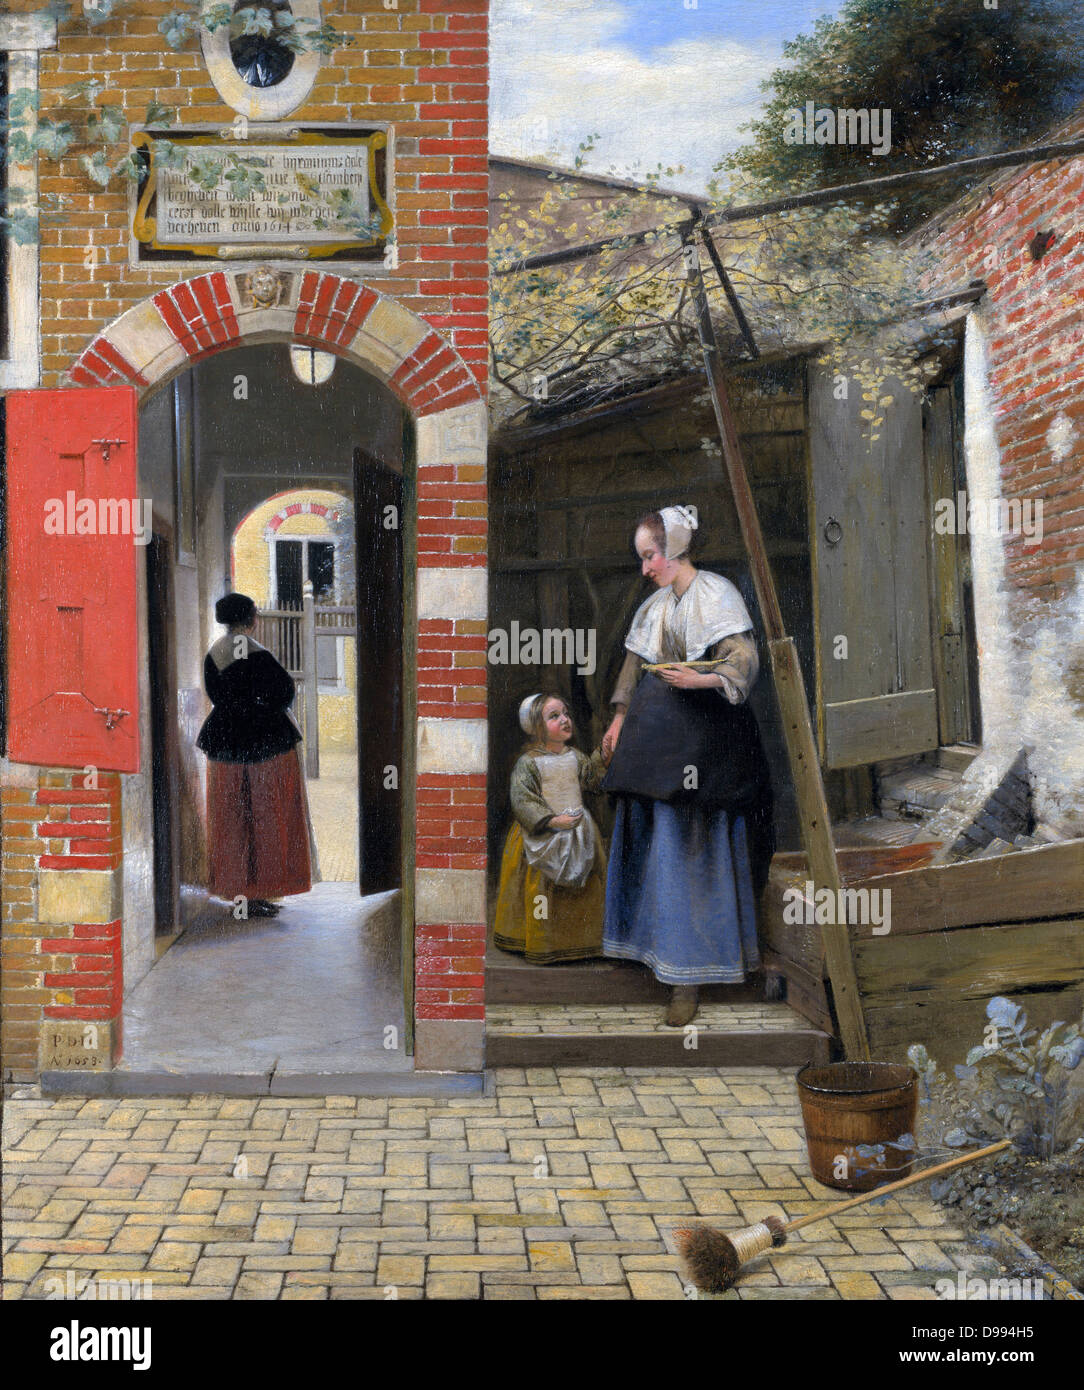 Pieter de Hooch (1629 – 1684) was a genre painter during the Dutch Golden Age. The Courtyard of a house in Delft - Stock Image